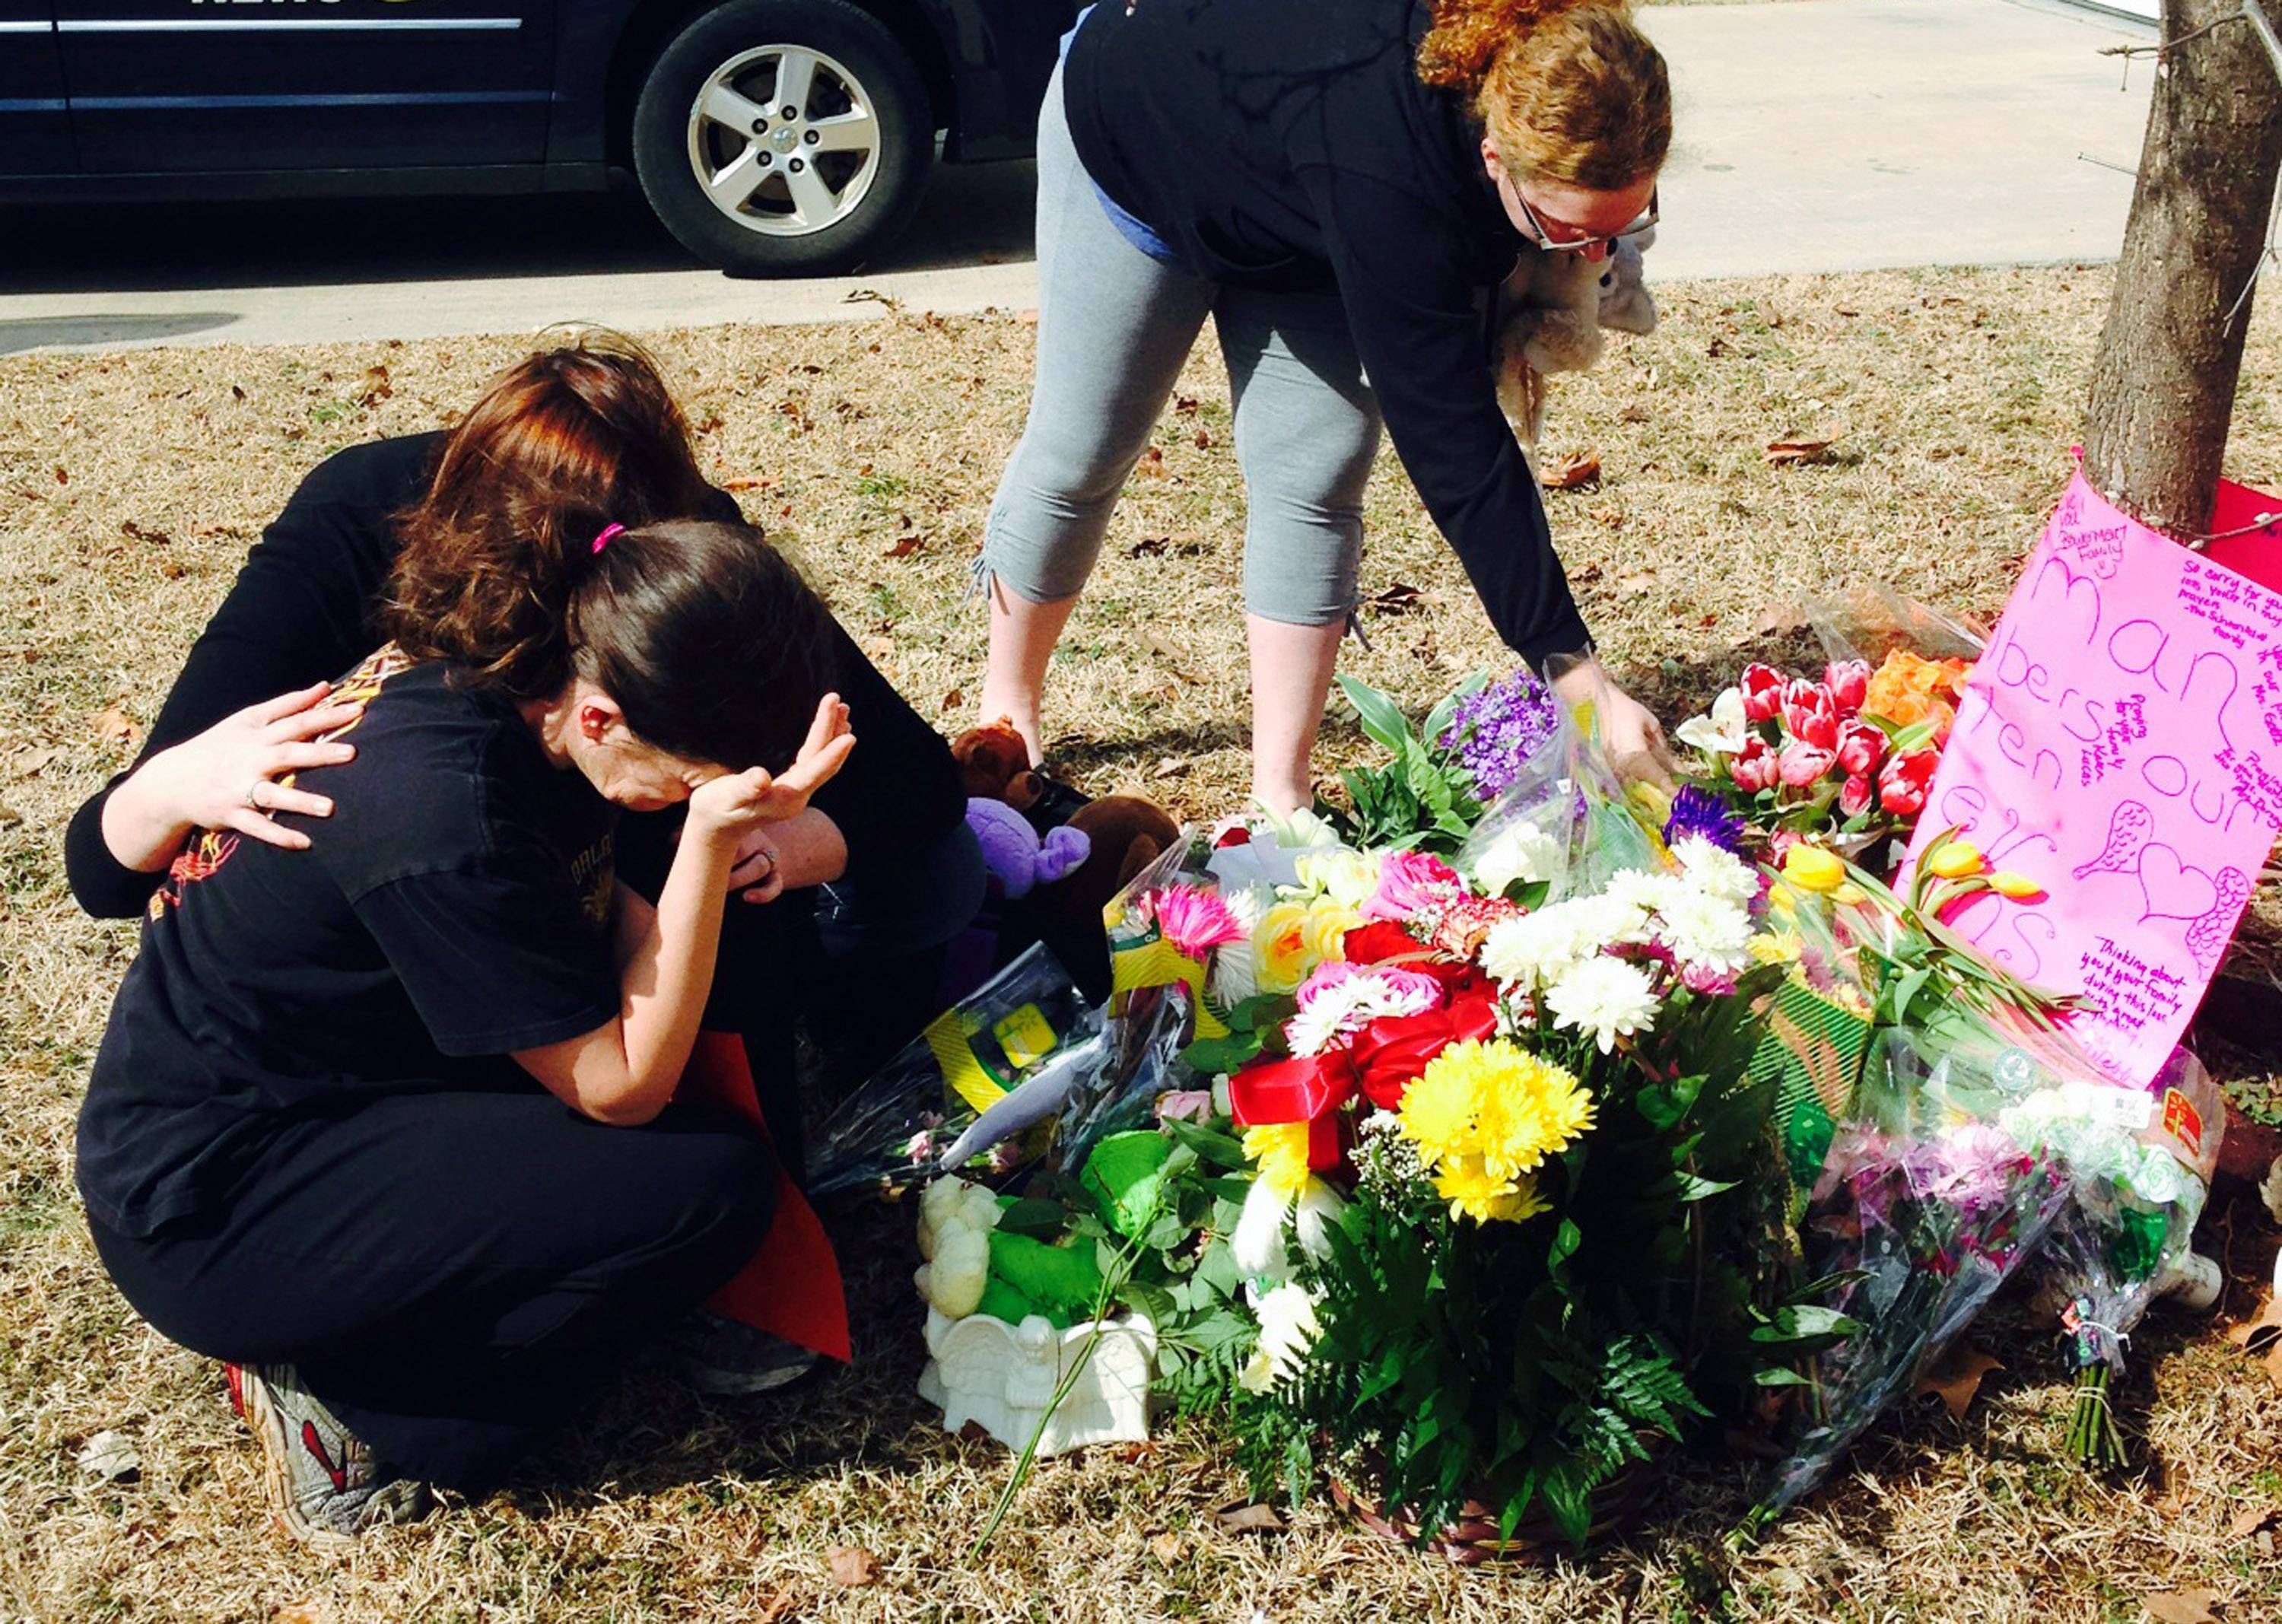 Stacey Owens, front left, mother of Hailey Owens, is consoled by Sara Wells, left, as family member Teri Nord arranges flowers left by well wishers Thursday, Feb. 20, 2014 near the site where the 10-year-old girl was abducted just blocks from her Springfield, Mo., home. Prosecutors have charged Craig Michael Wood with first-degree murder, kidnapping and armed criminal action in the girl's death.